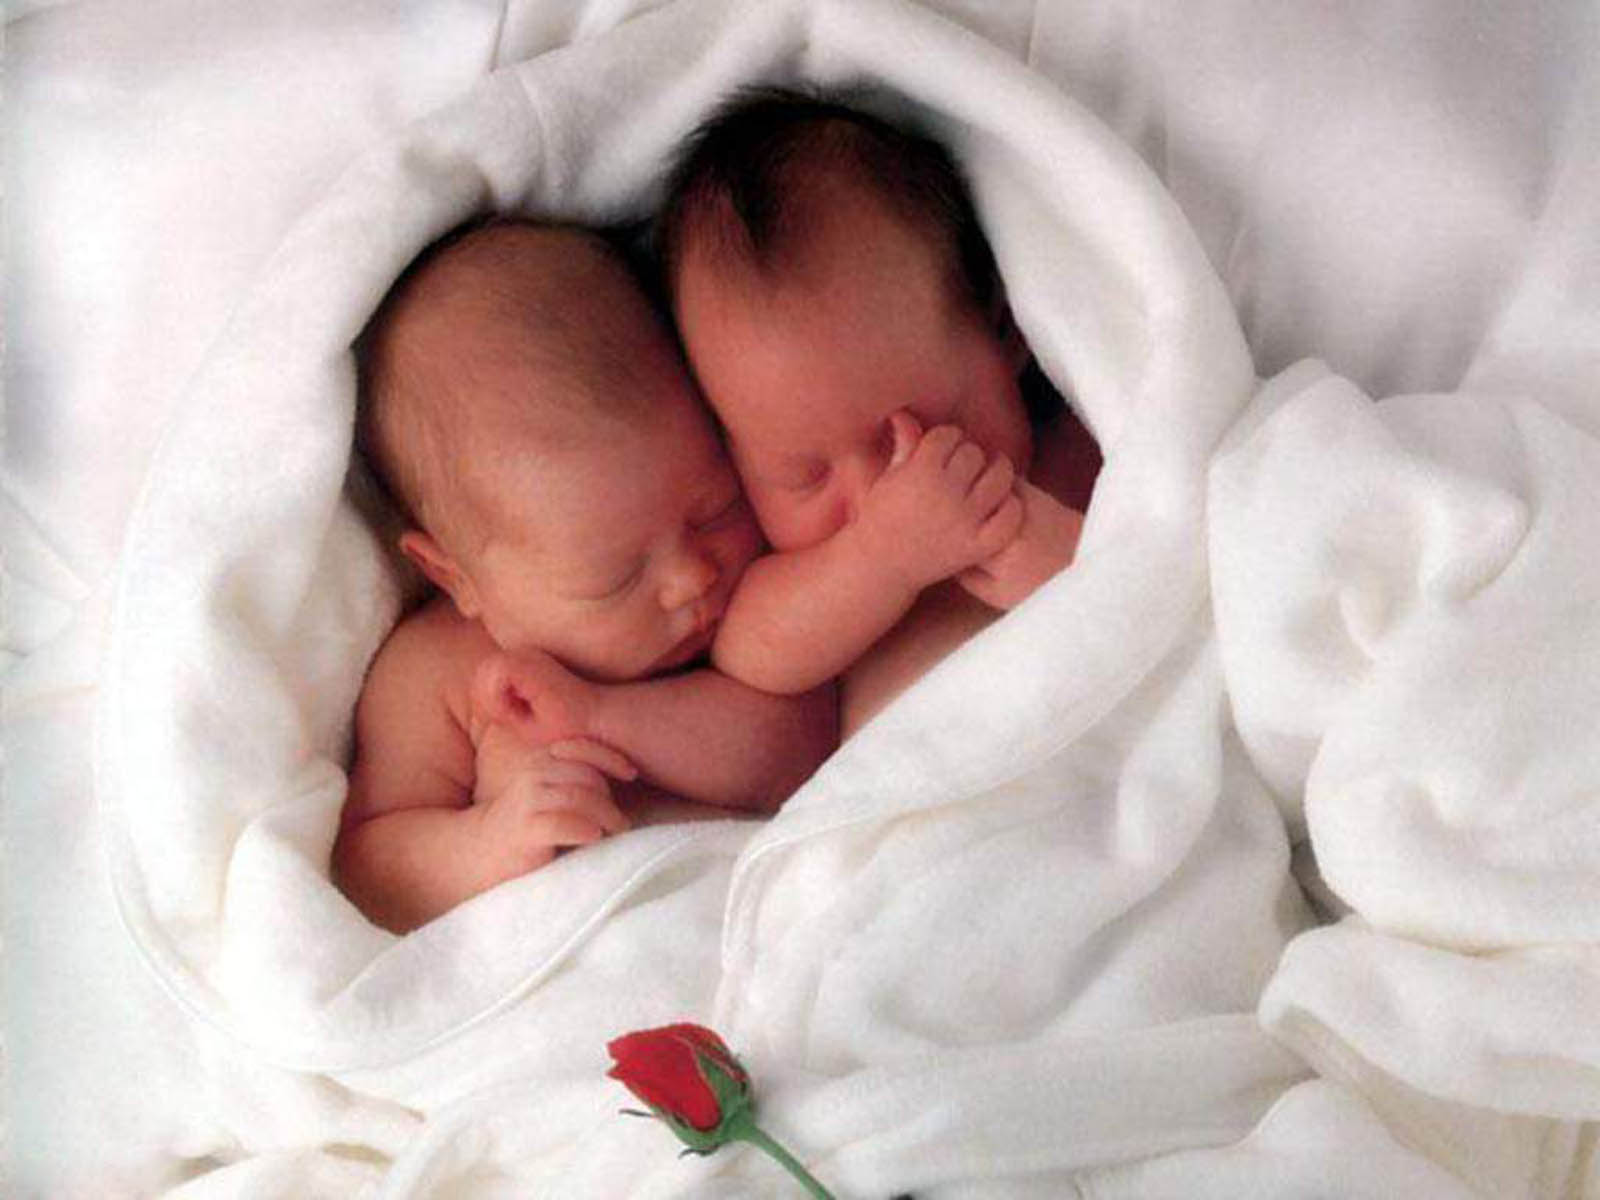 Cute Babies Sleeping Images: Wallpapers: Sleeping Babies Wallpapers